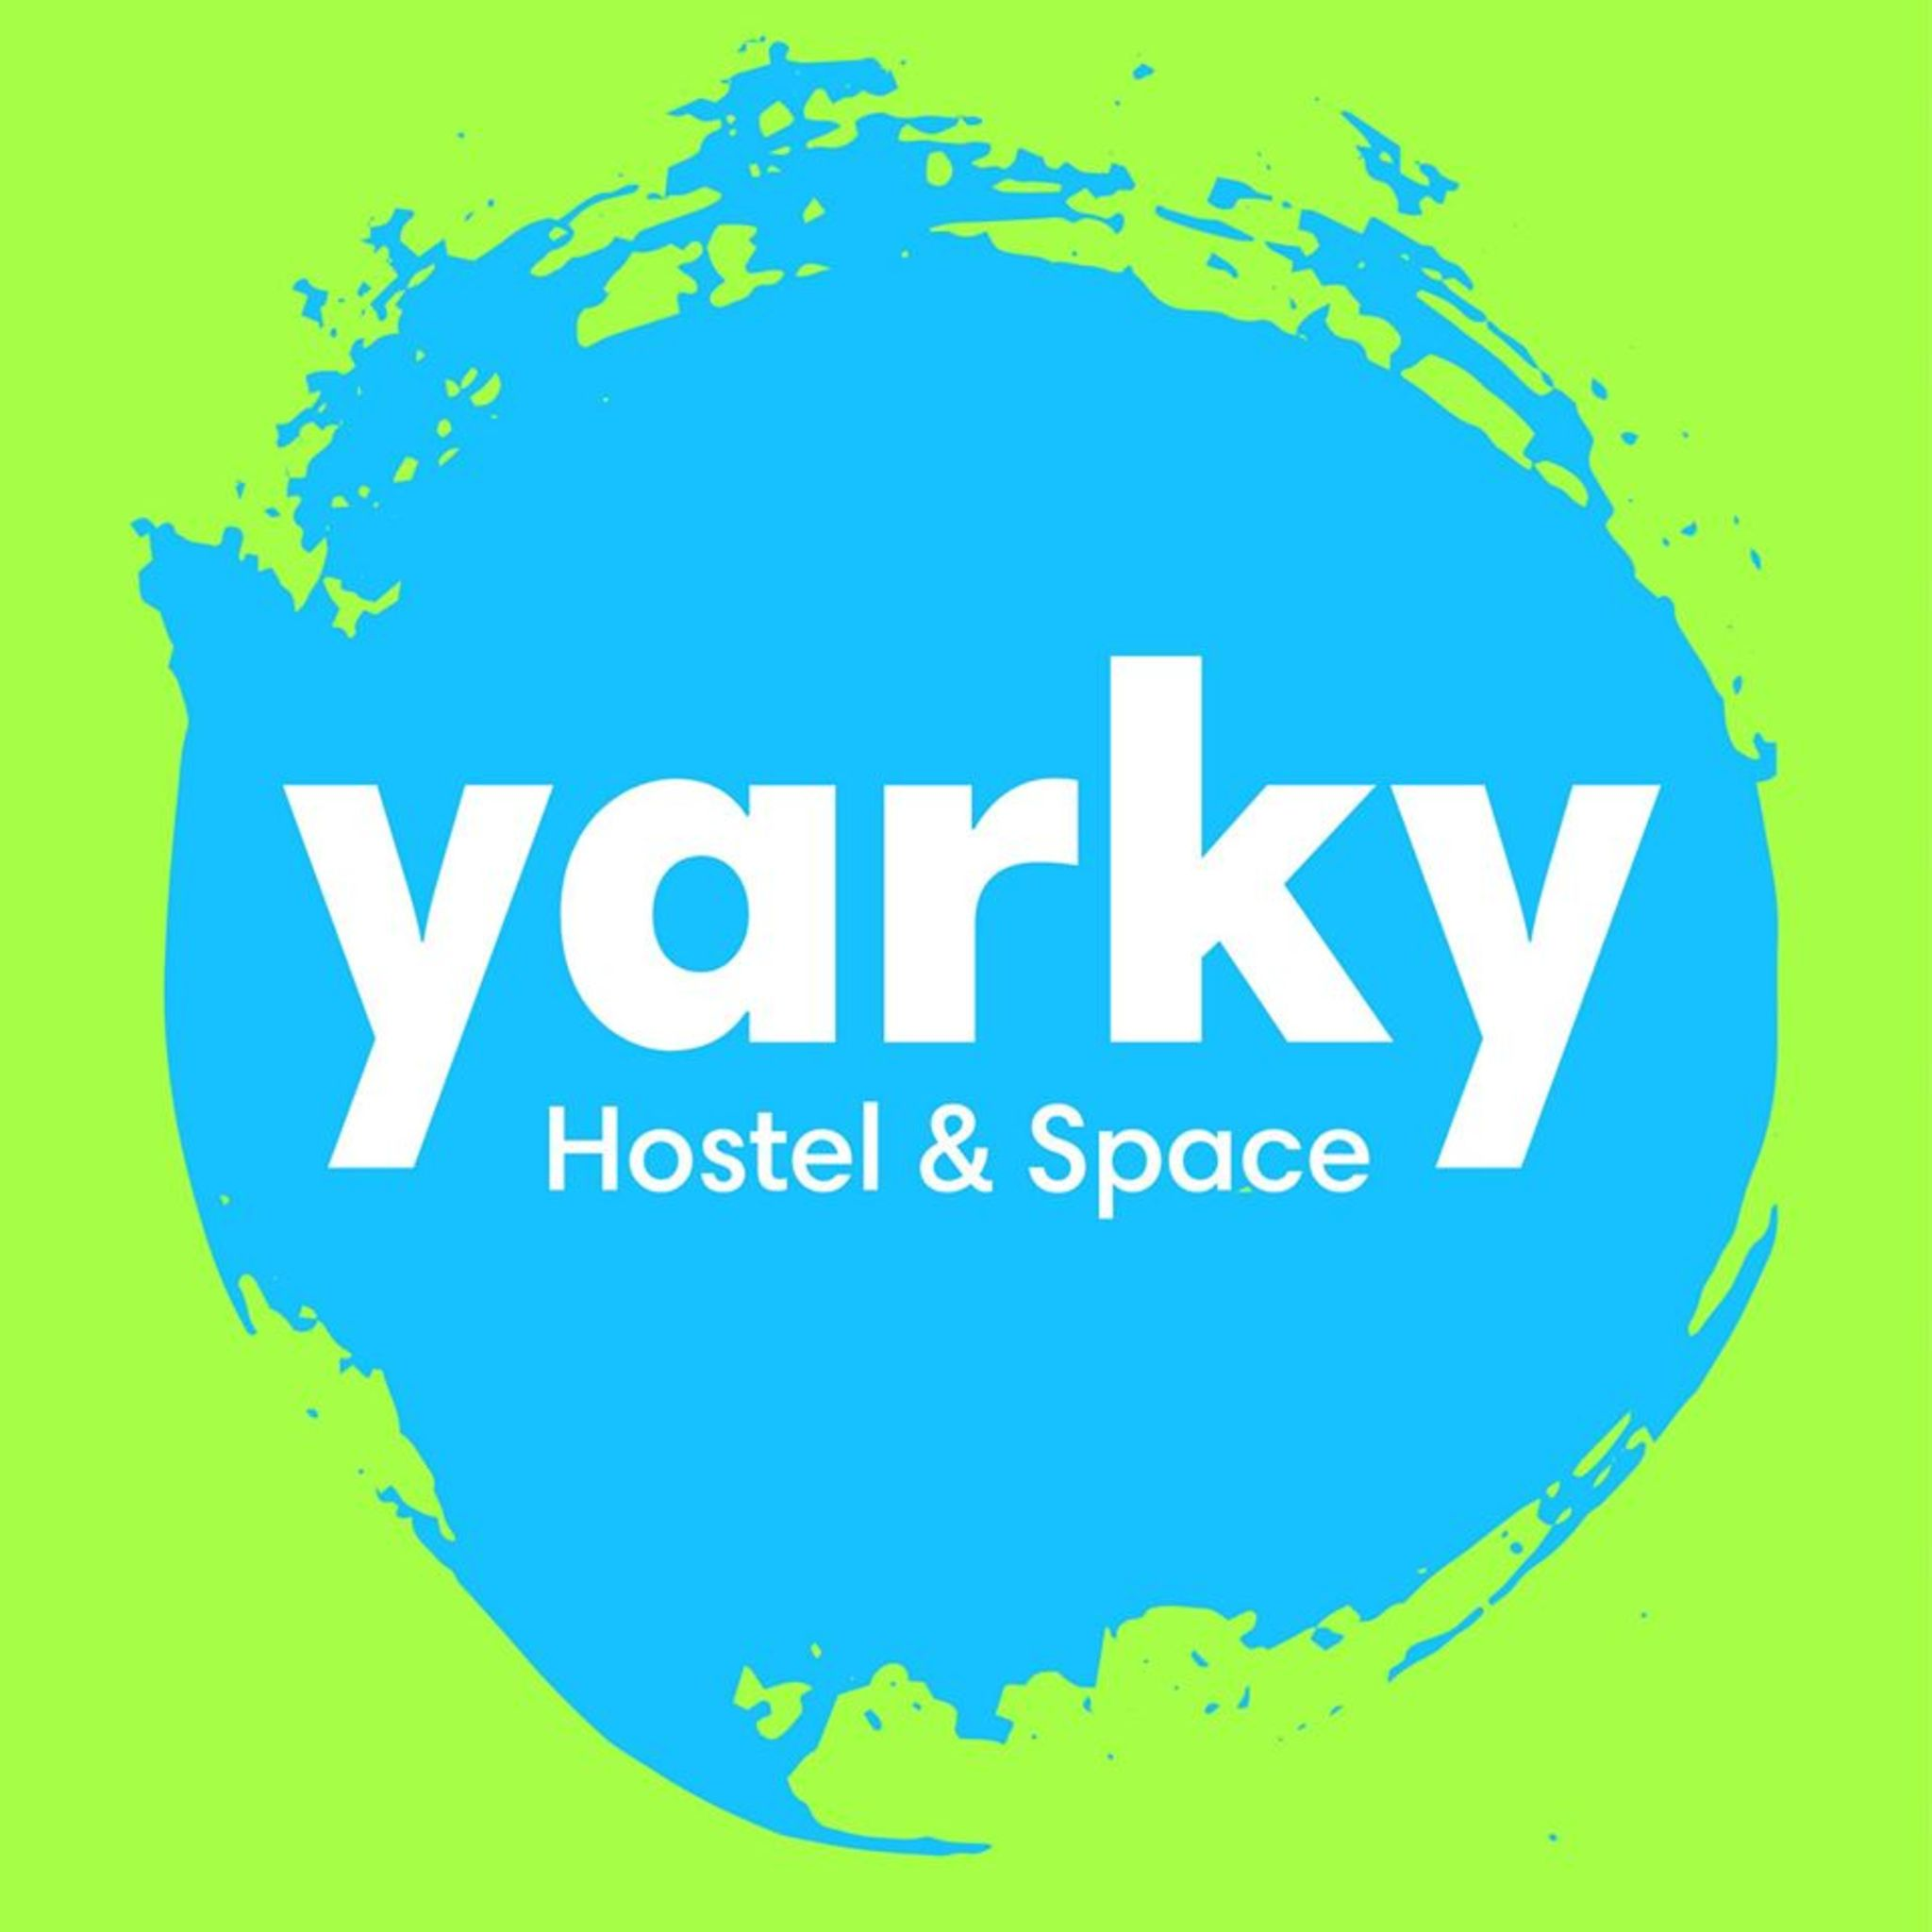 Creative space Yarky Hostel & Space